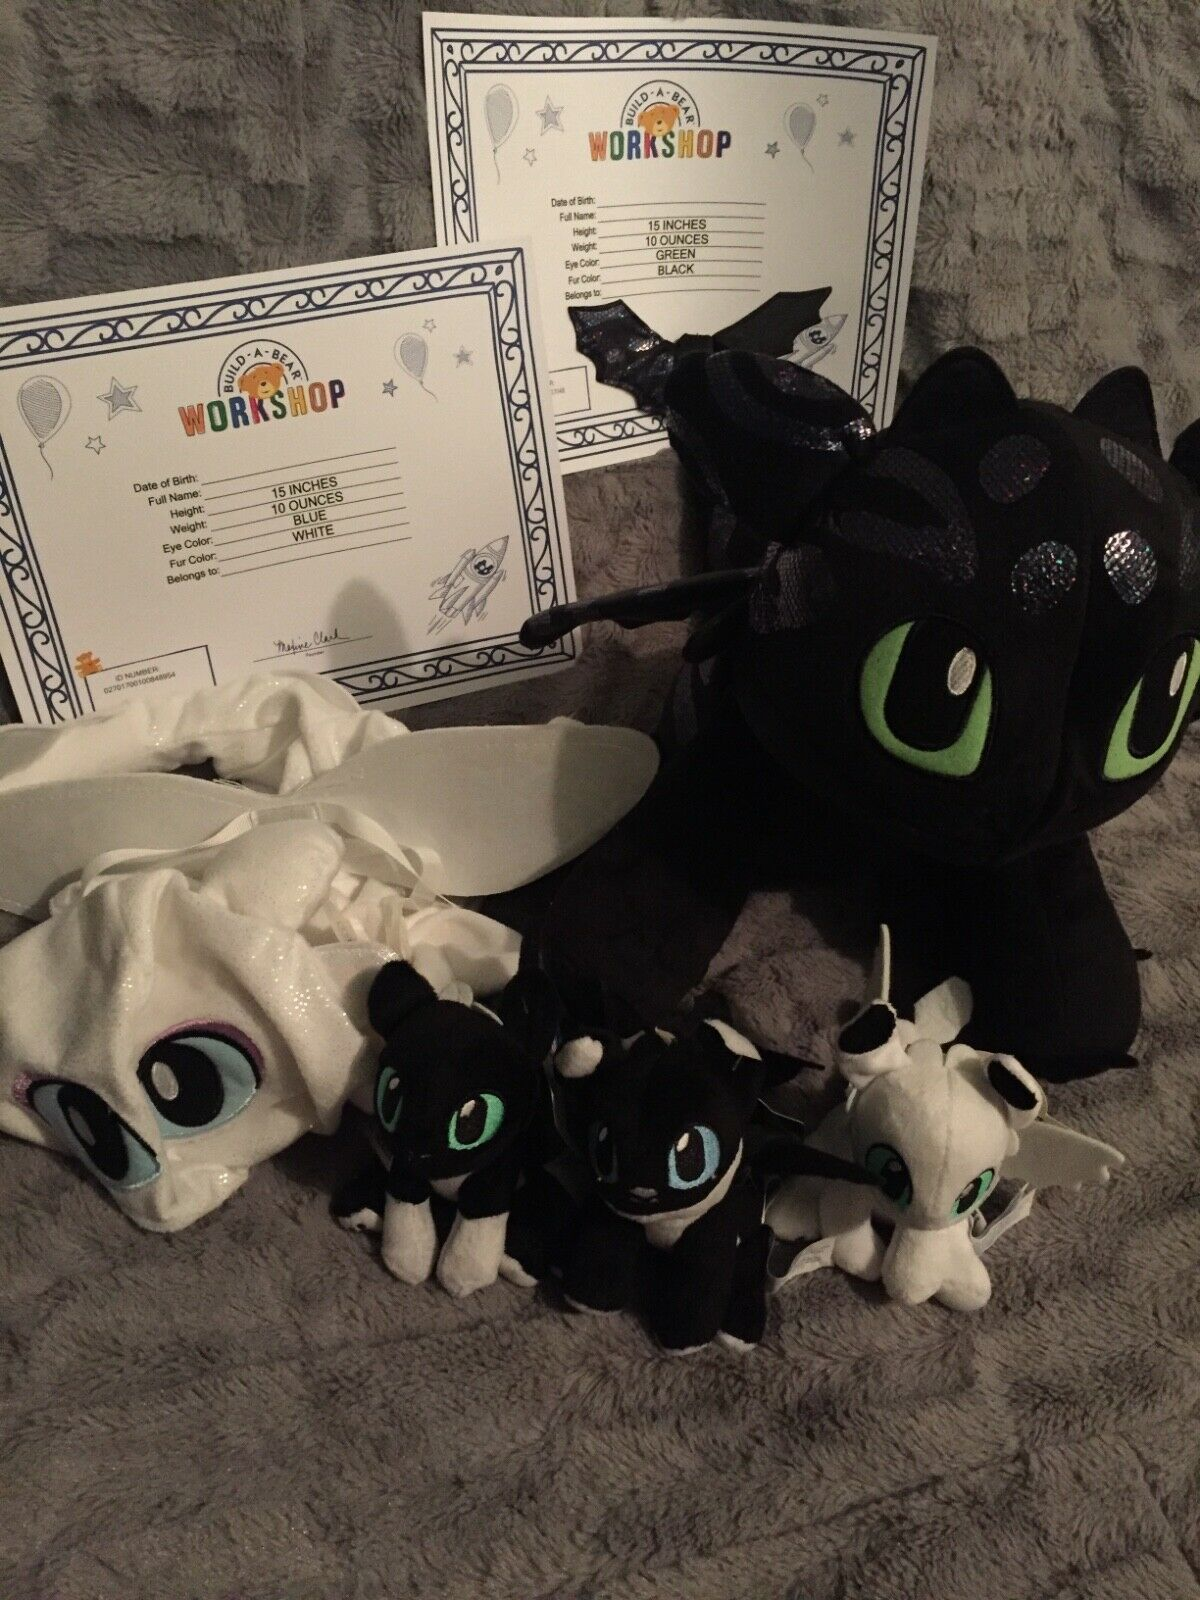 Build A Bear How To Train Your Dragon Limited Edition Nightlights Set Family